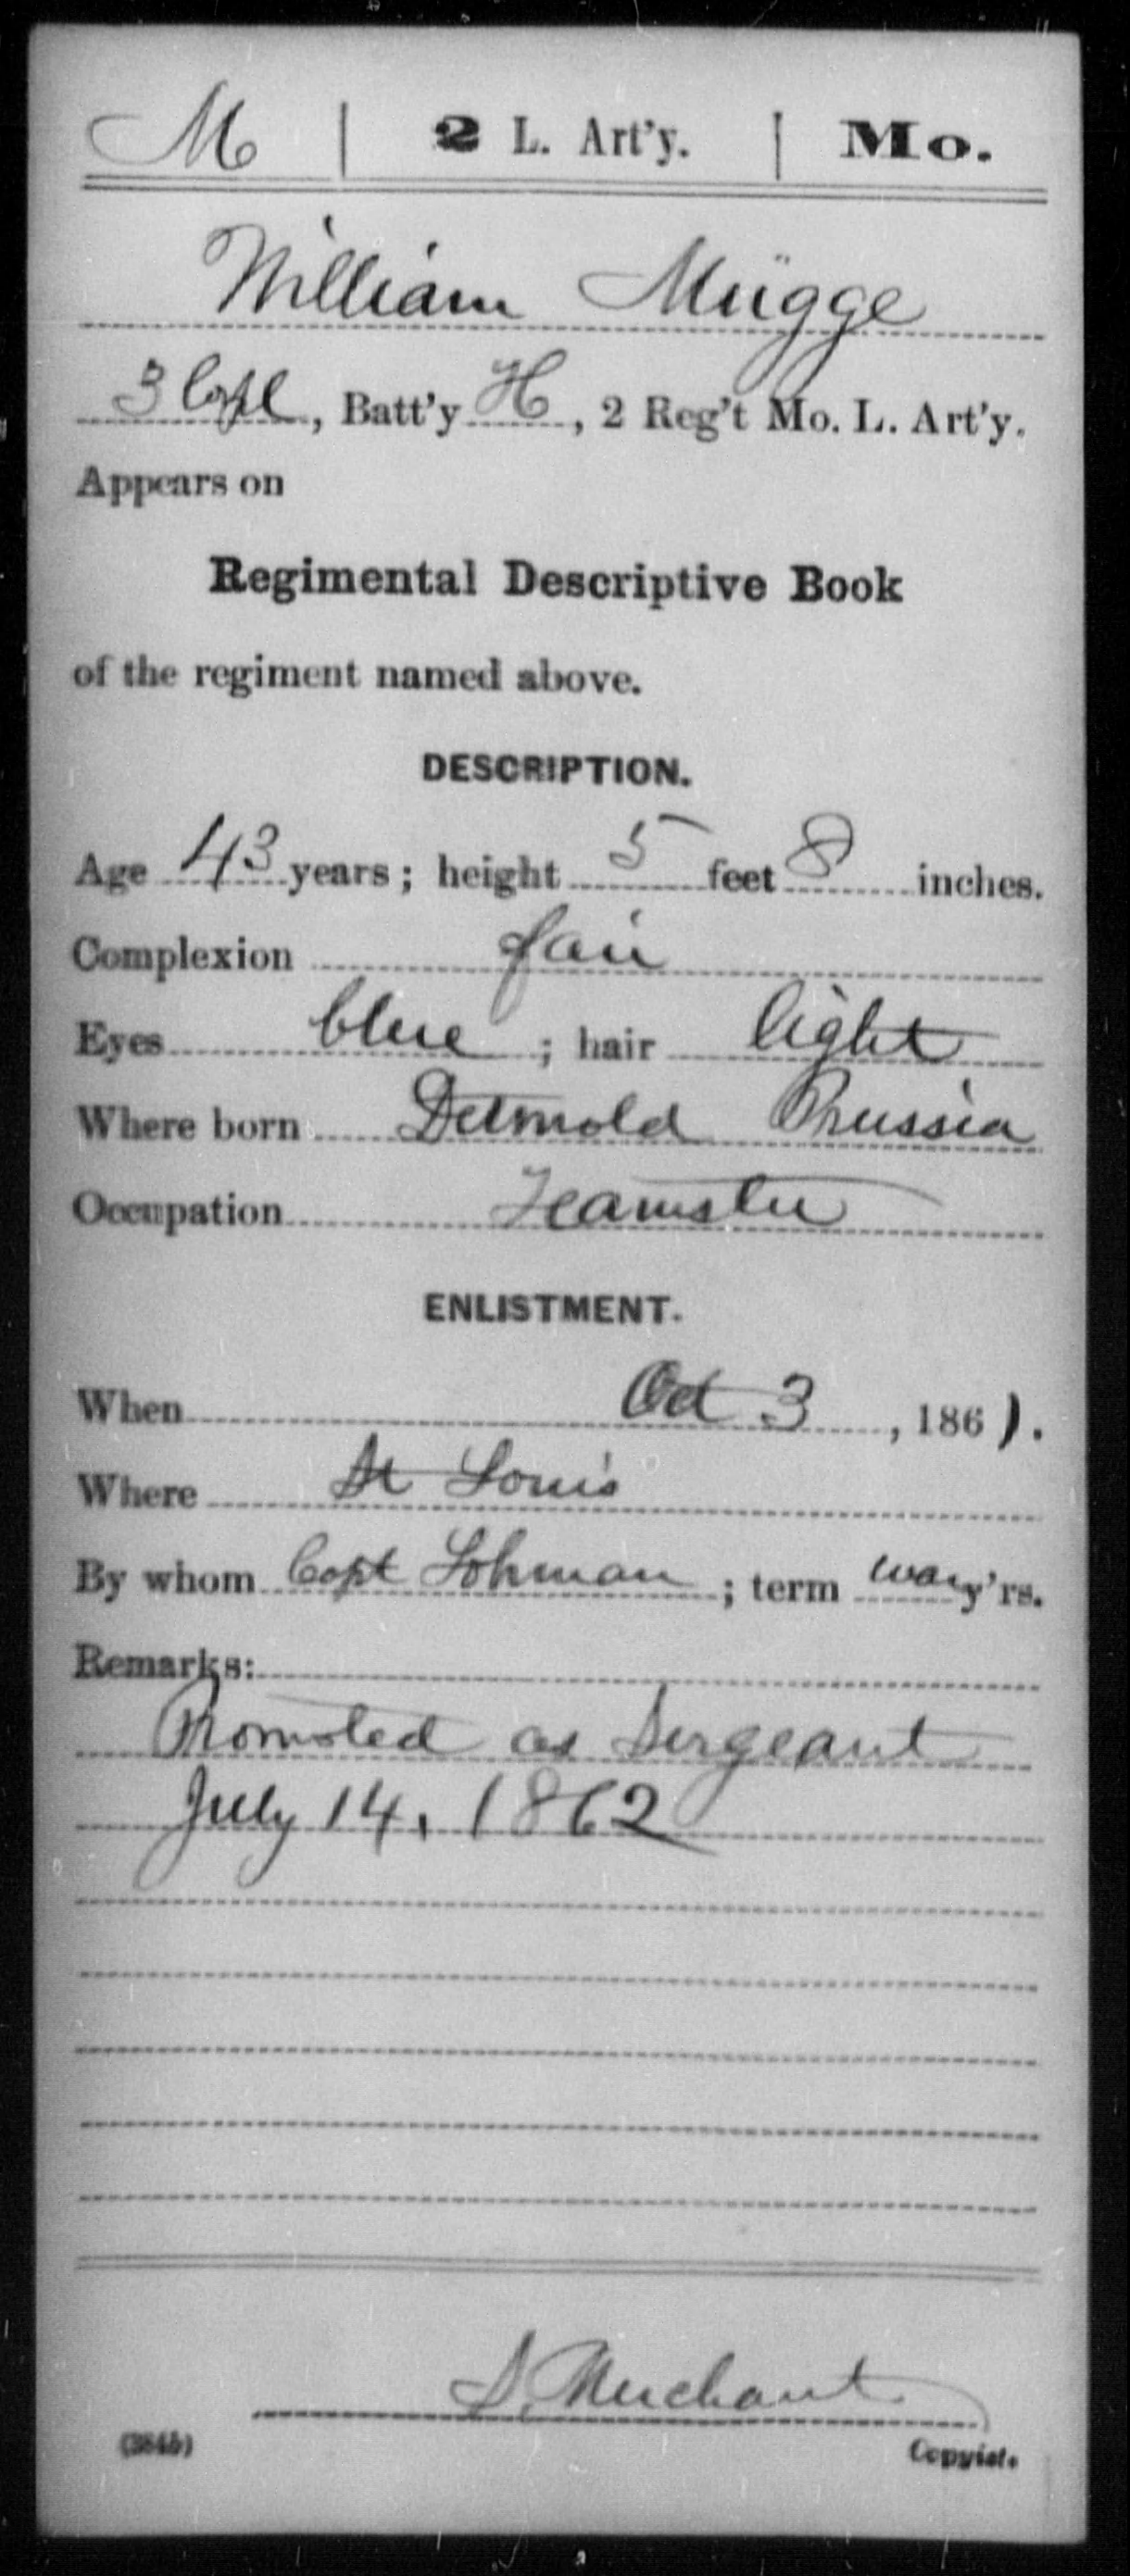 [Missouri] Mugge, William - Age 43, Year: 1861 - Second Light Artillery, M-R